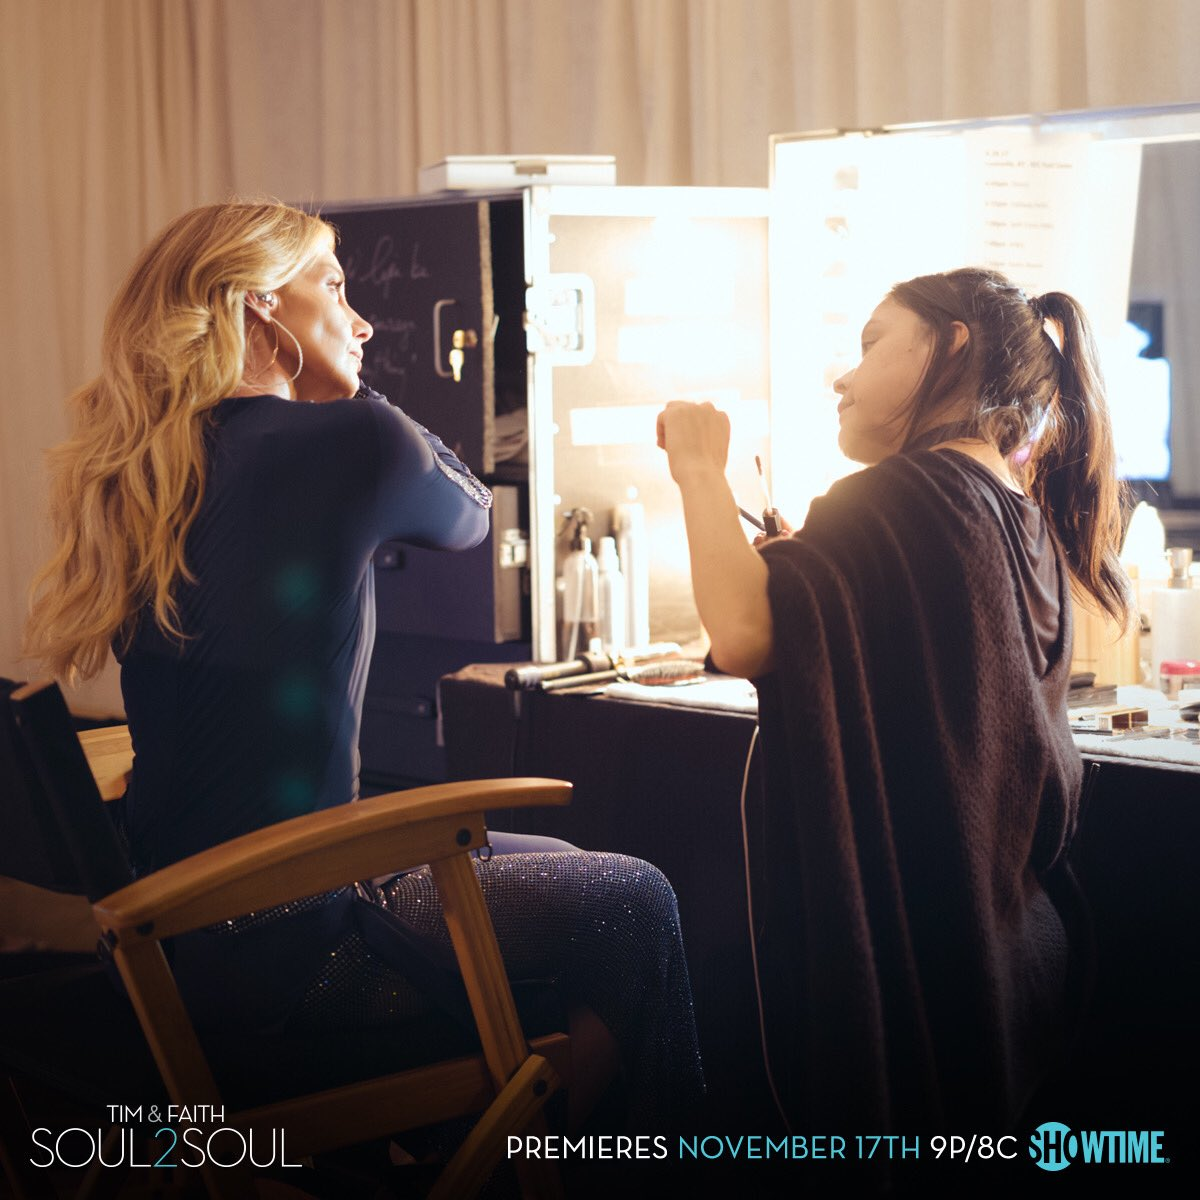 Tomorrow • @Showtime • #soul2soul https://t.co/uLCX5G3wqE